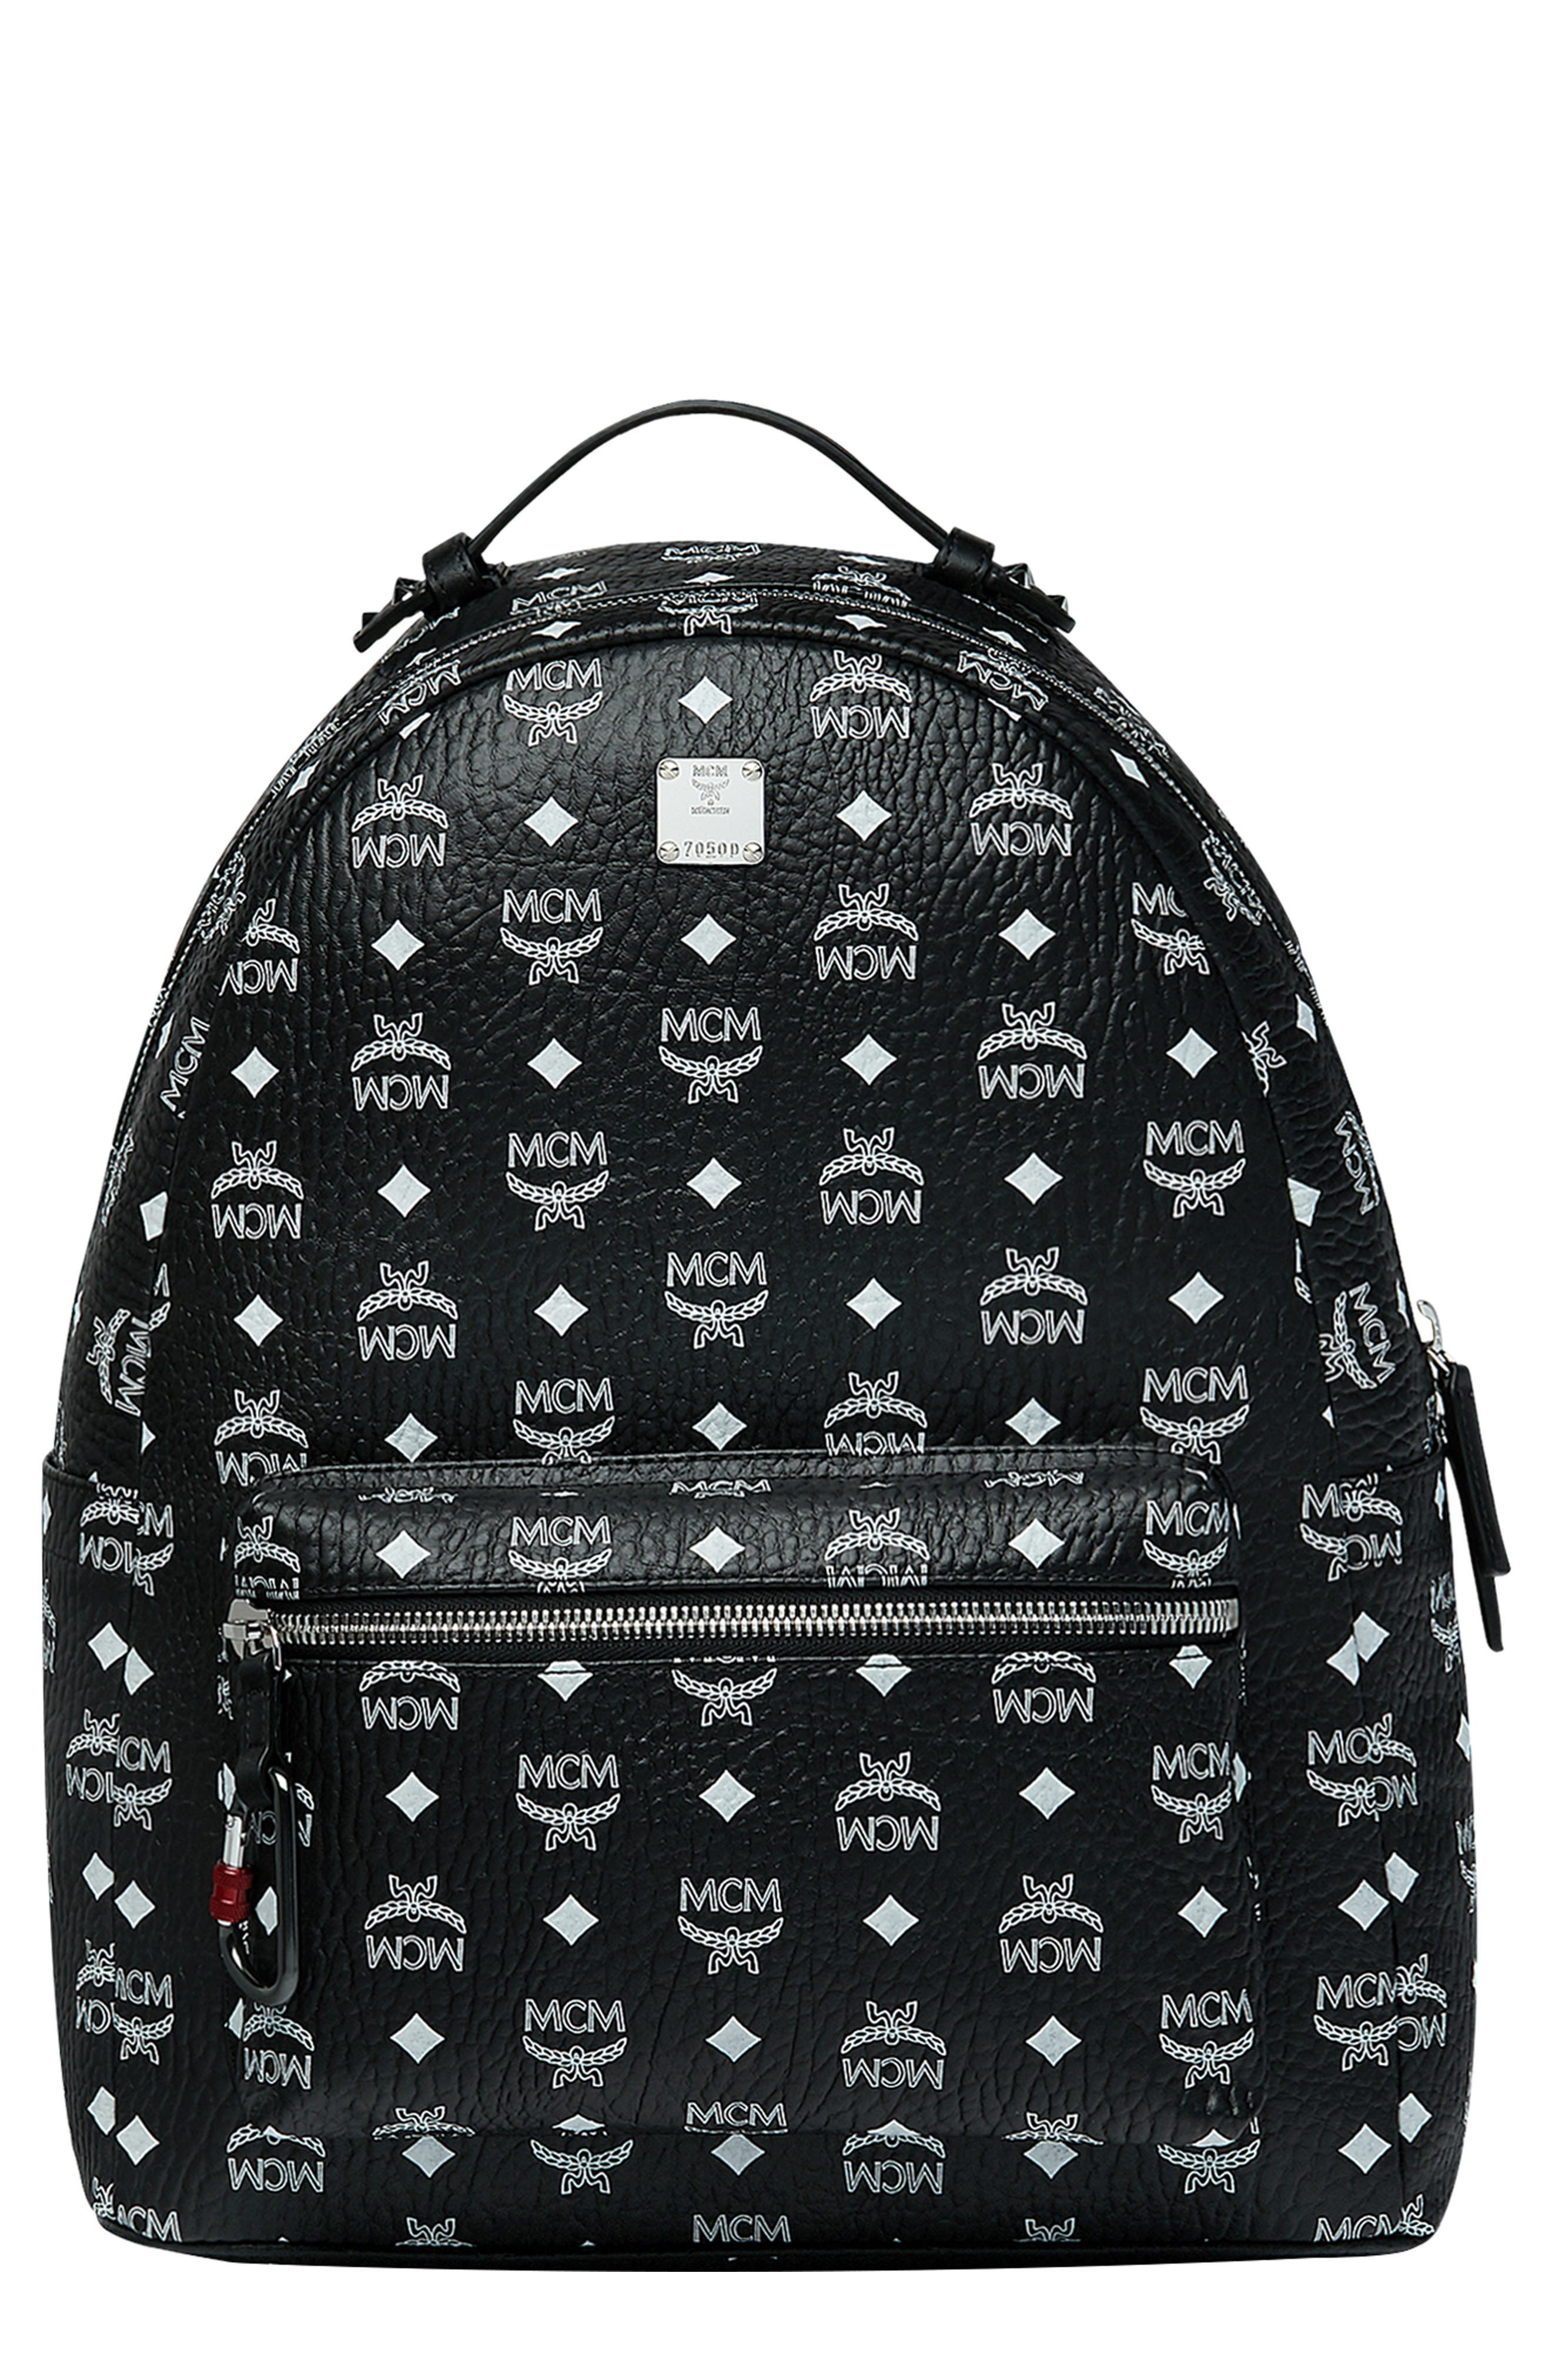 MCM, Stark Visetos Faux Leather Backpack, Main thumbnail 1, color, WHITE LOGO BLACK